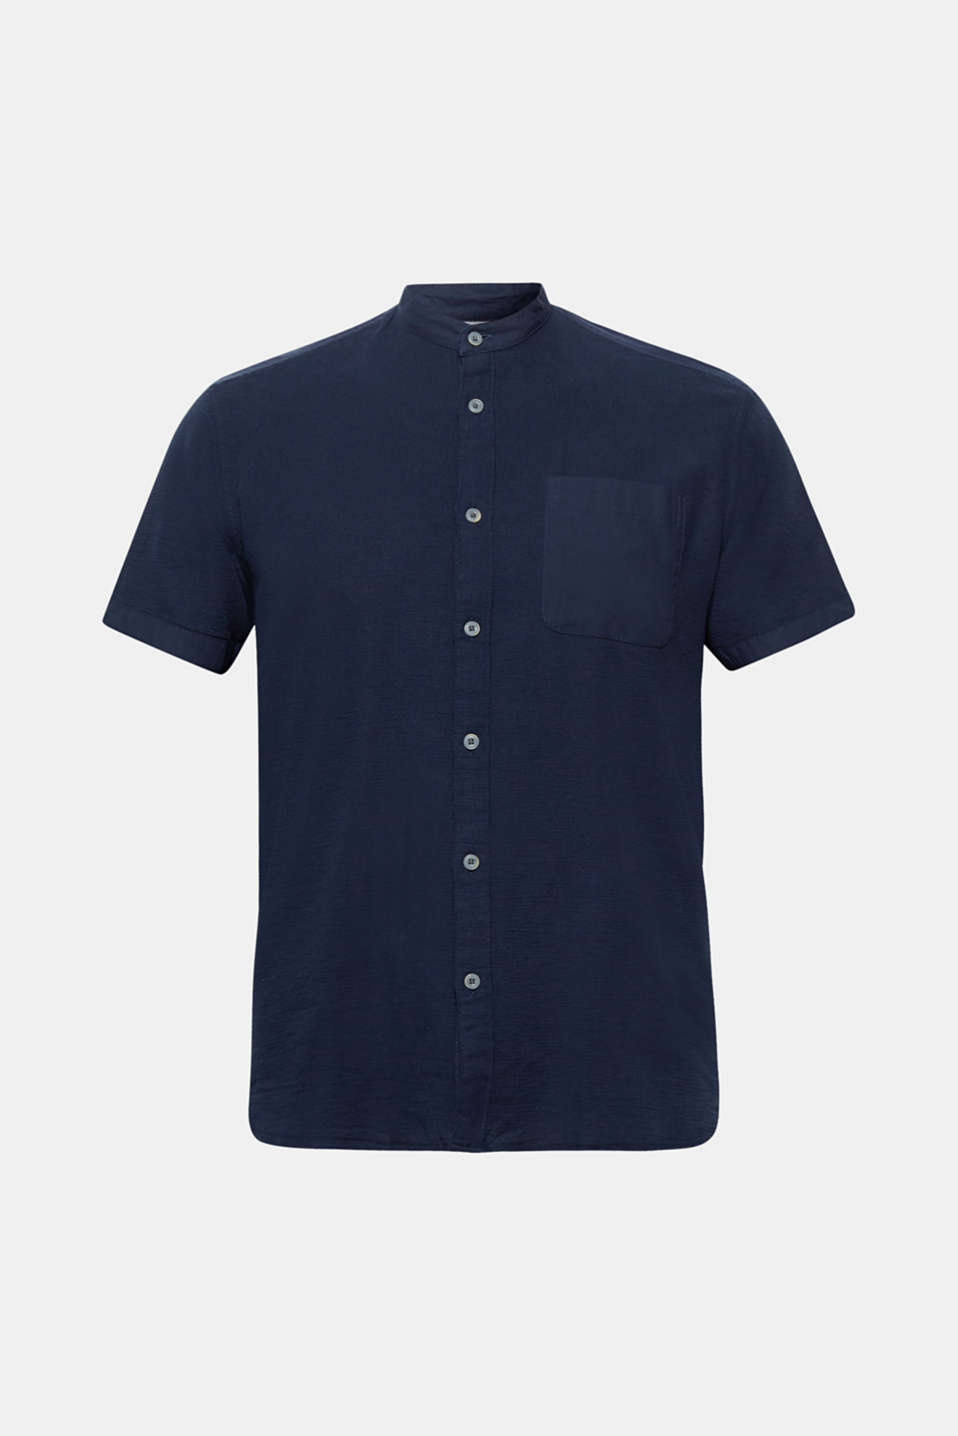 Shirts woven Regular fit, NAVY, detail image number 7